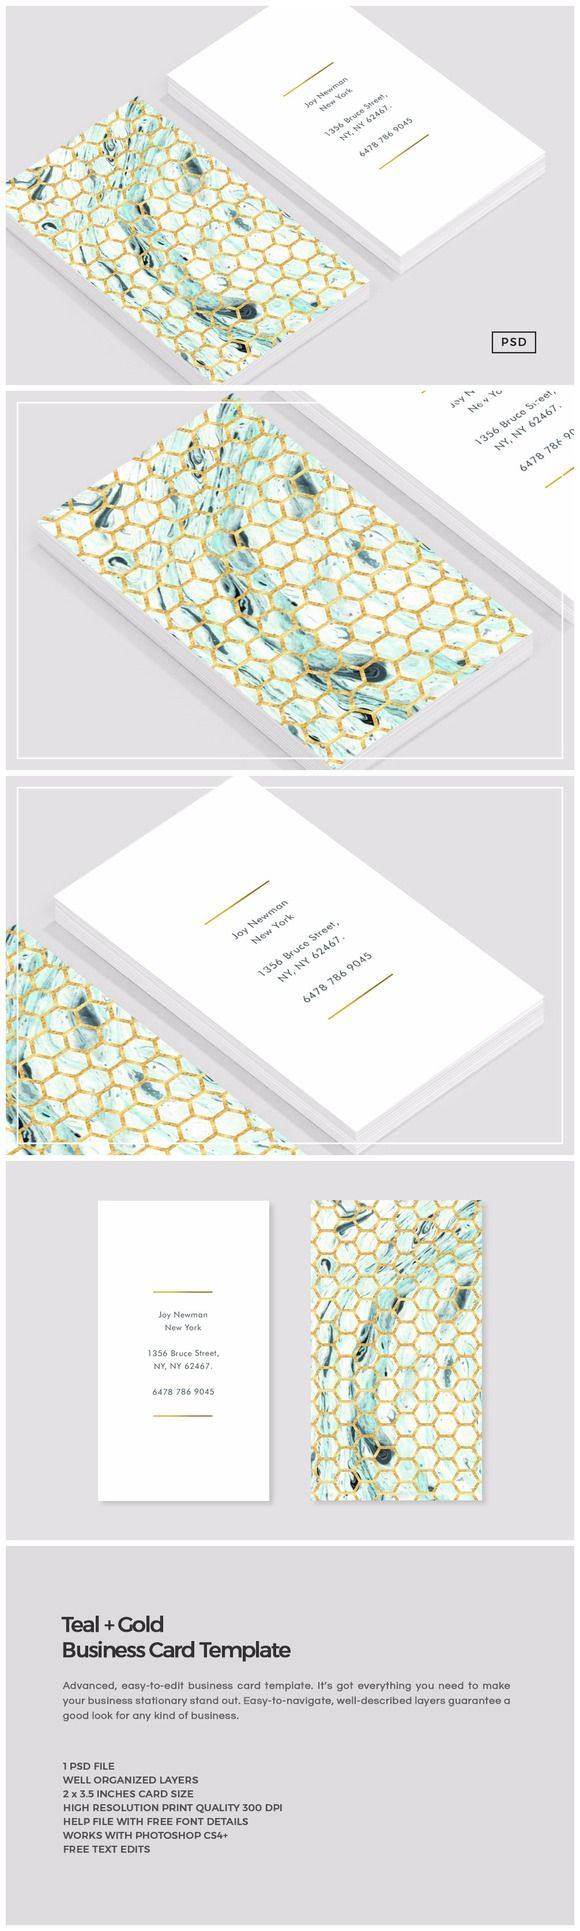 Teal + Gold Business Card Template by The Design Label on @creativemarket